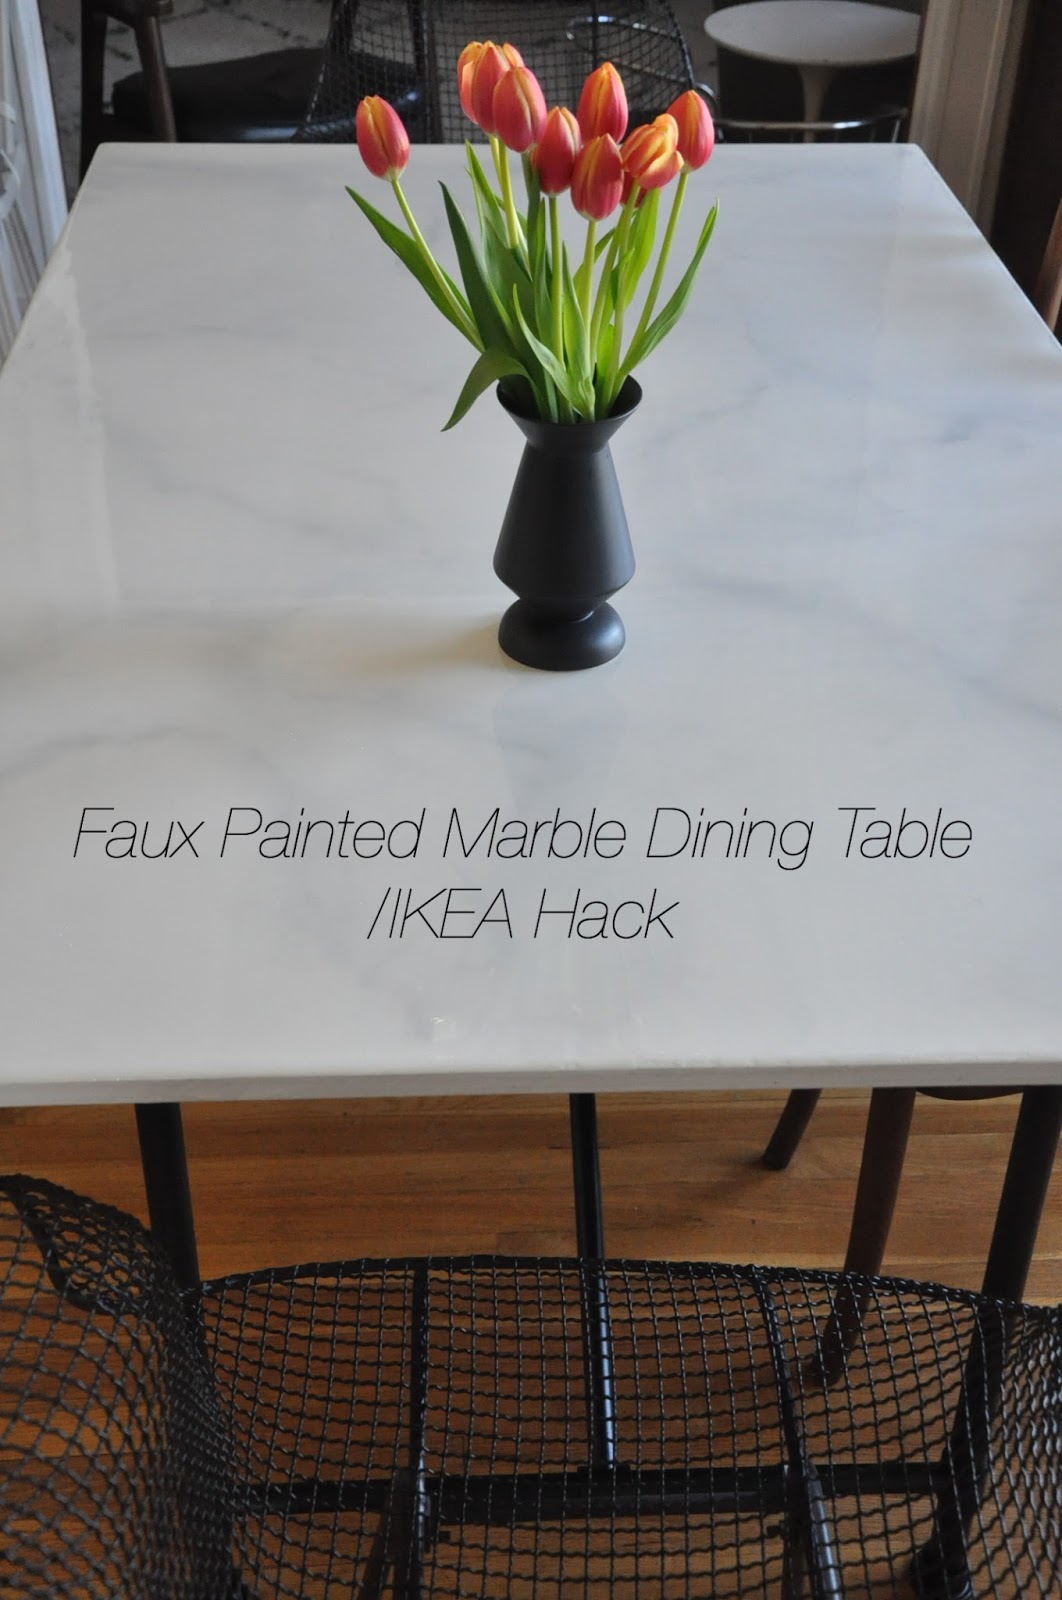 DIY Faux Marble Dining Table/ Ikea Hack